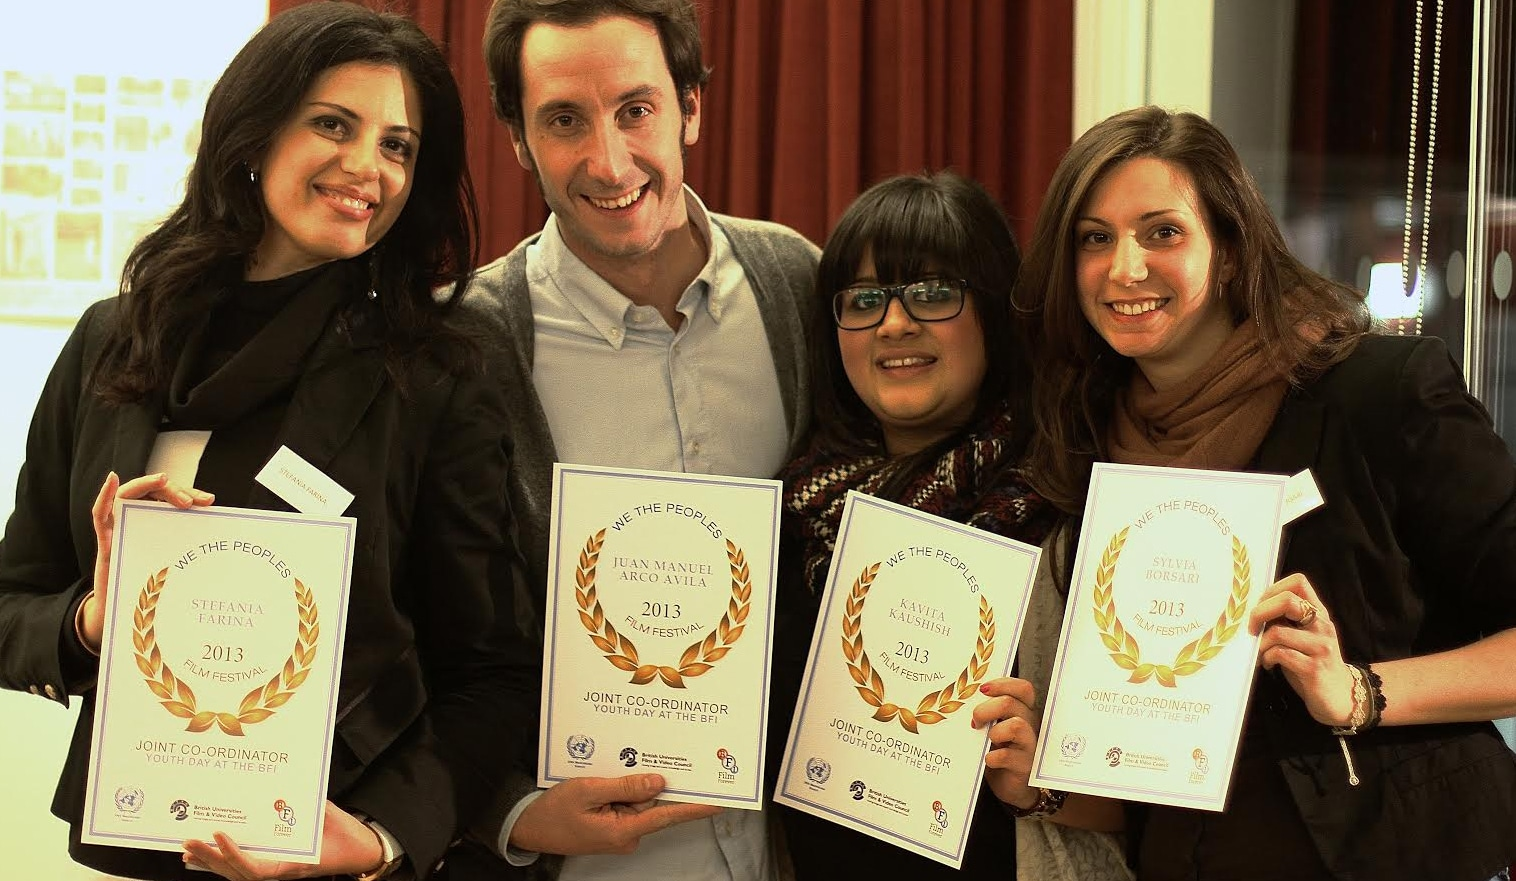 Group of Event Academy volunteers showing their We The People's award certificates